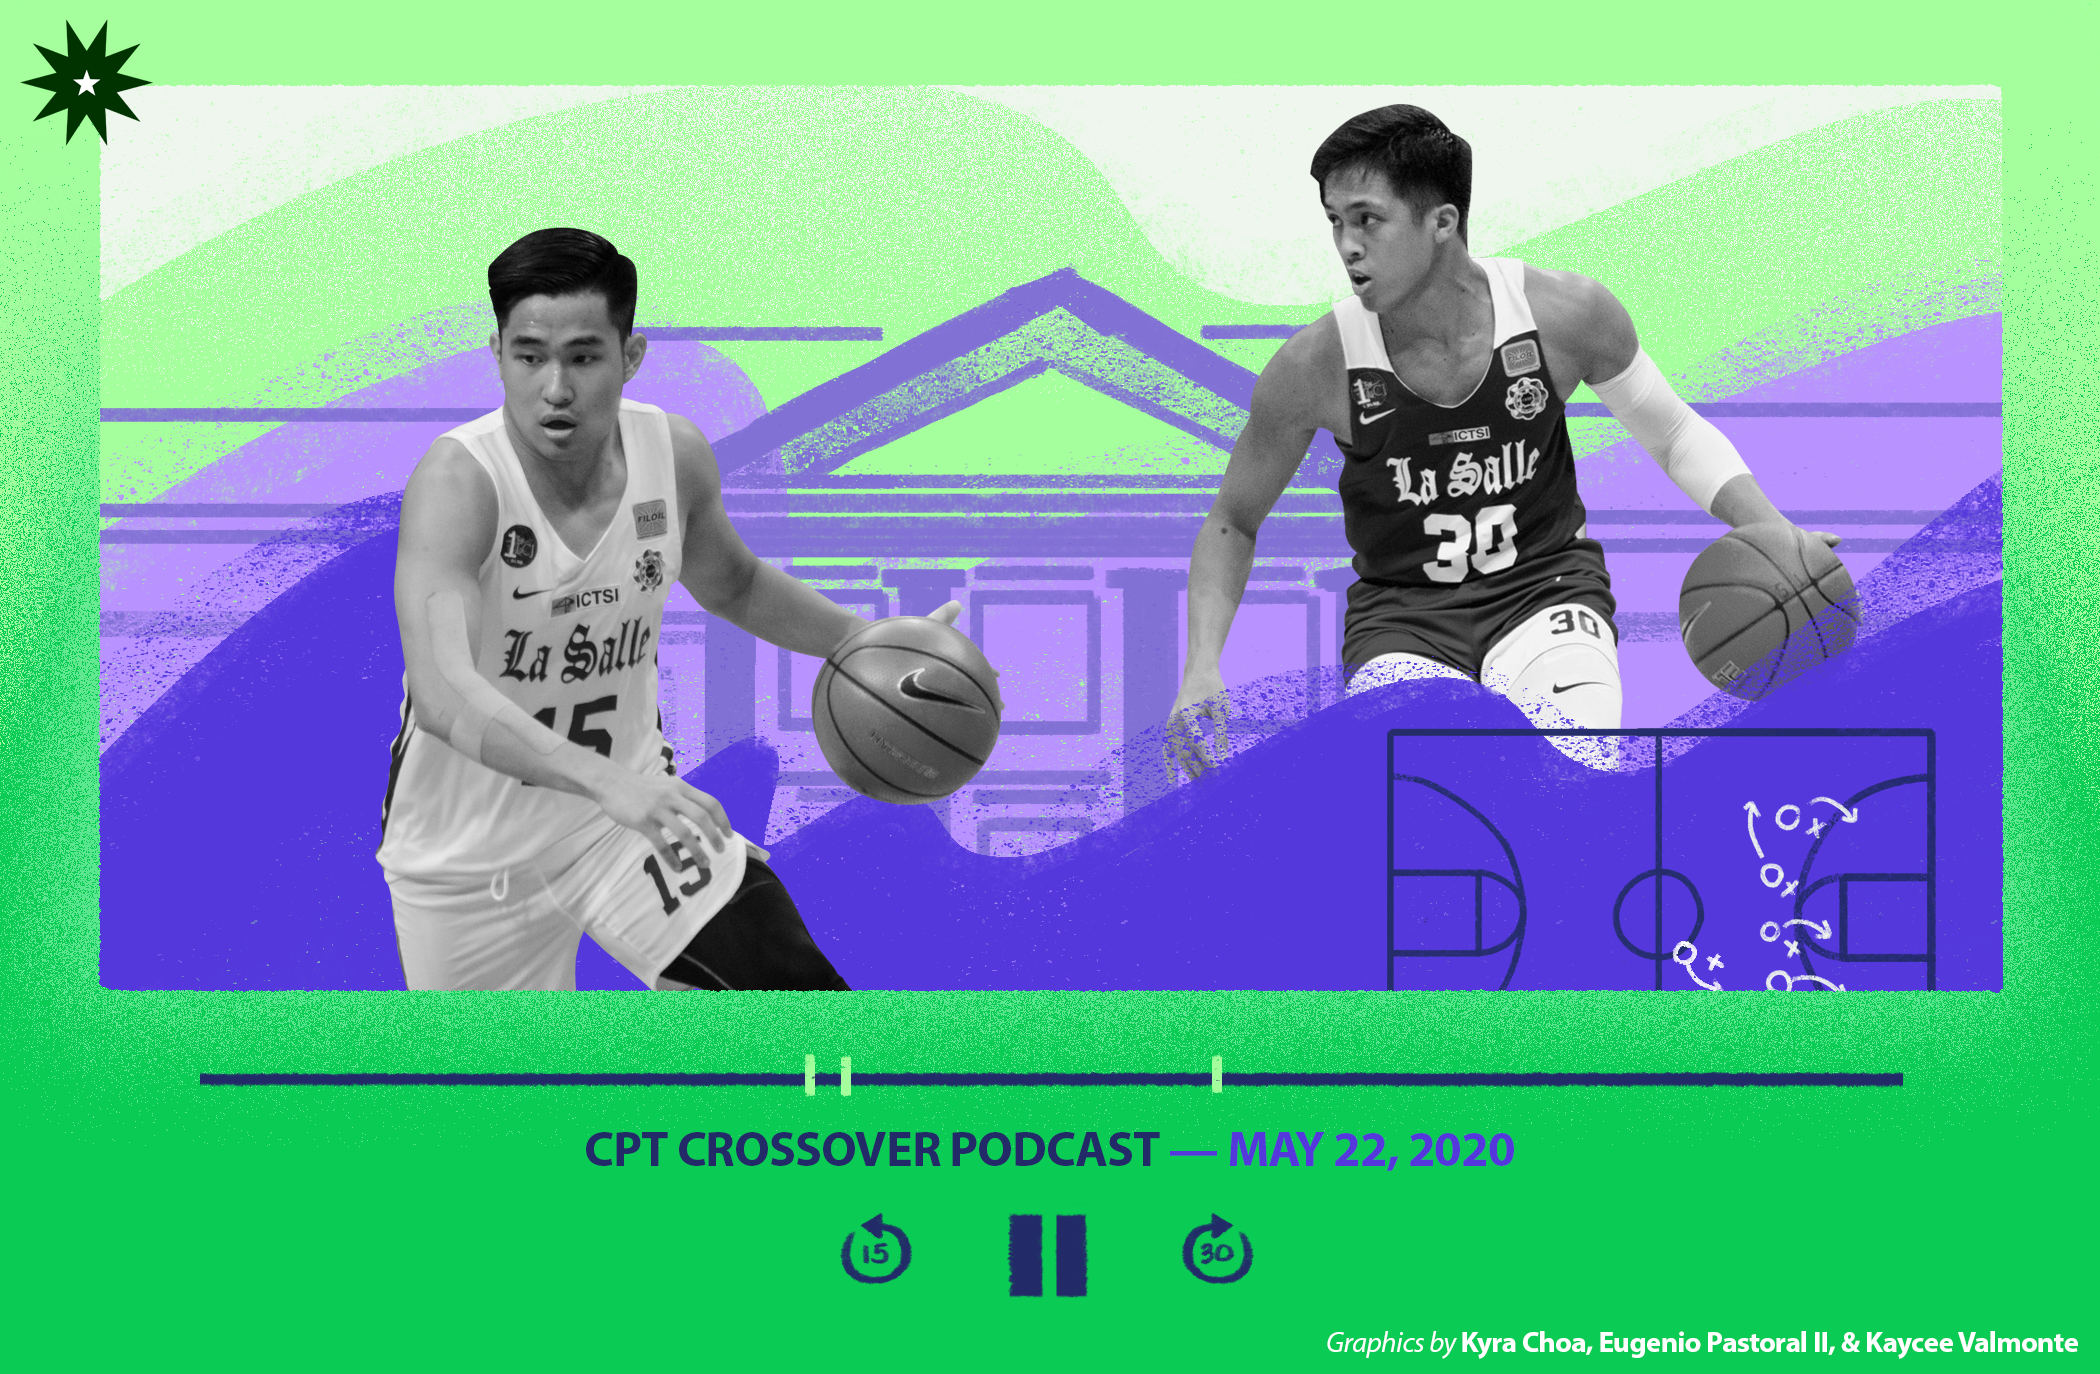 Former DLSU backcourt duo discuss their journey to basketball supremacy